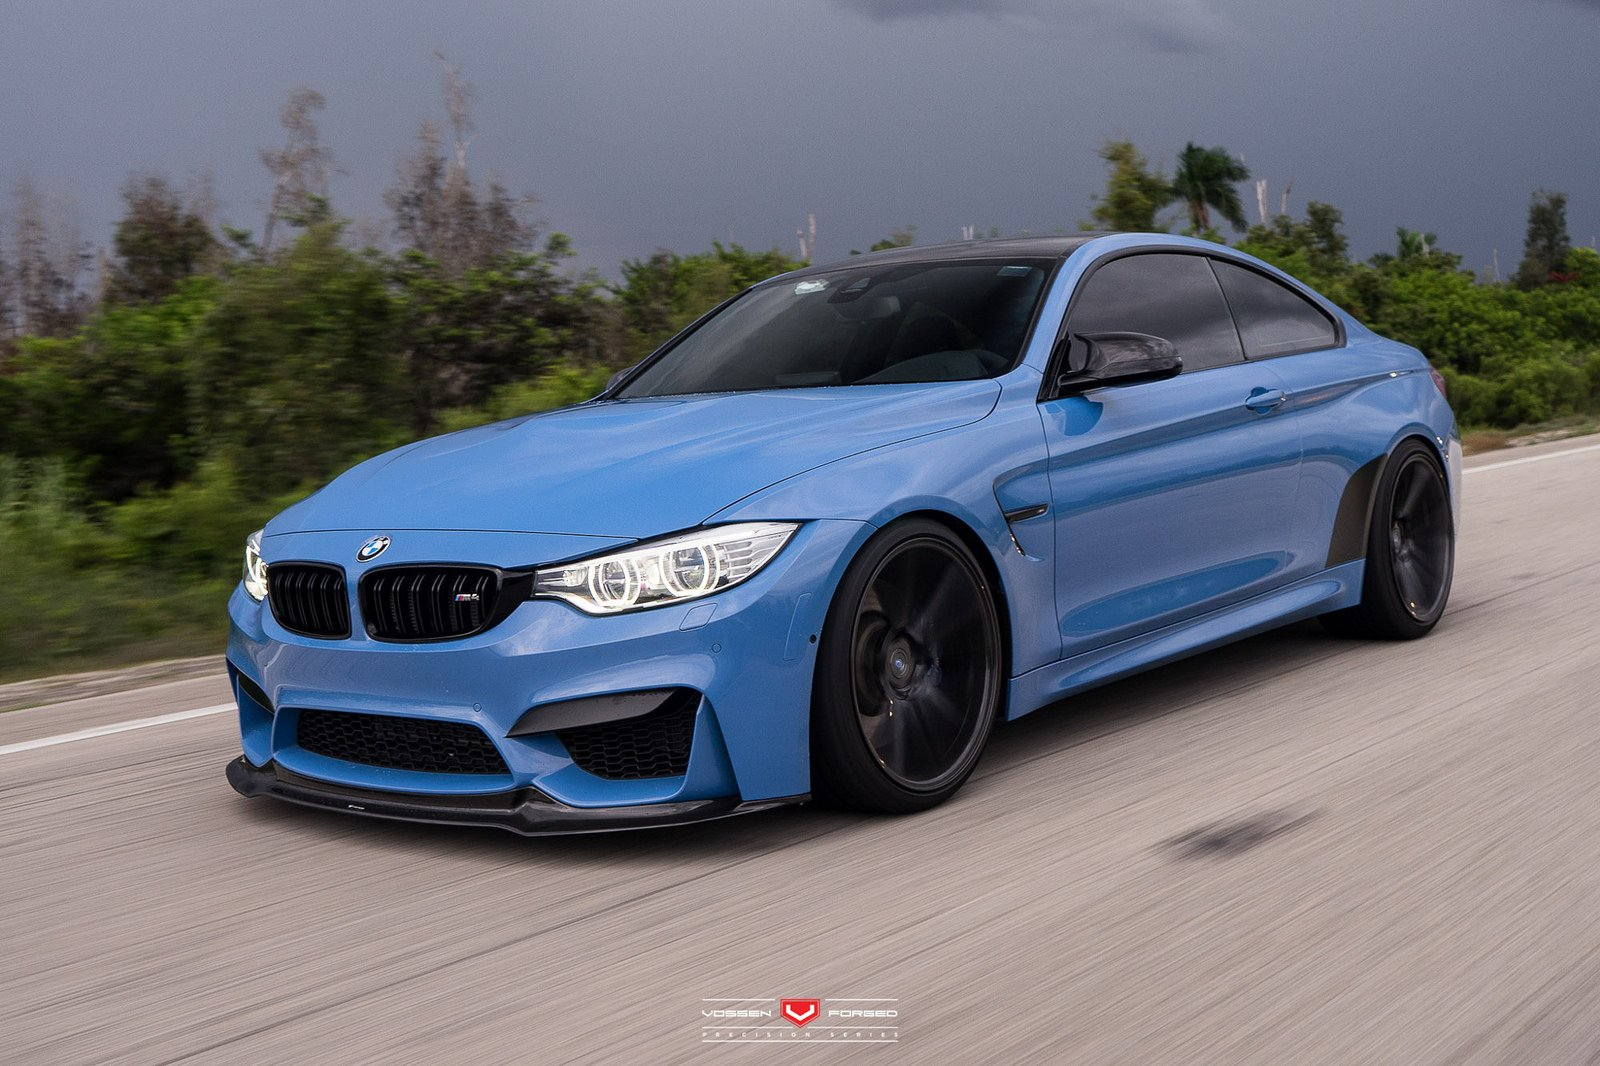 blue convertible bmw m4 - photo #34